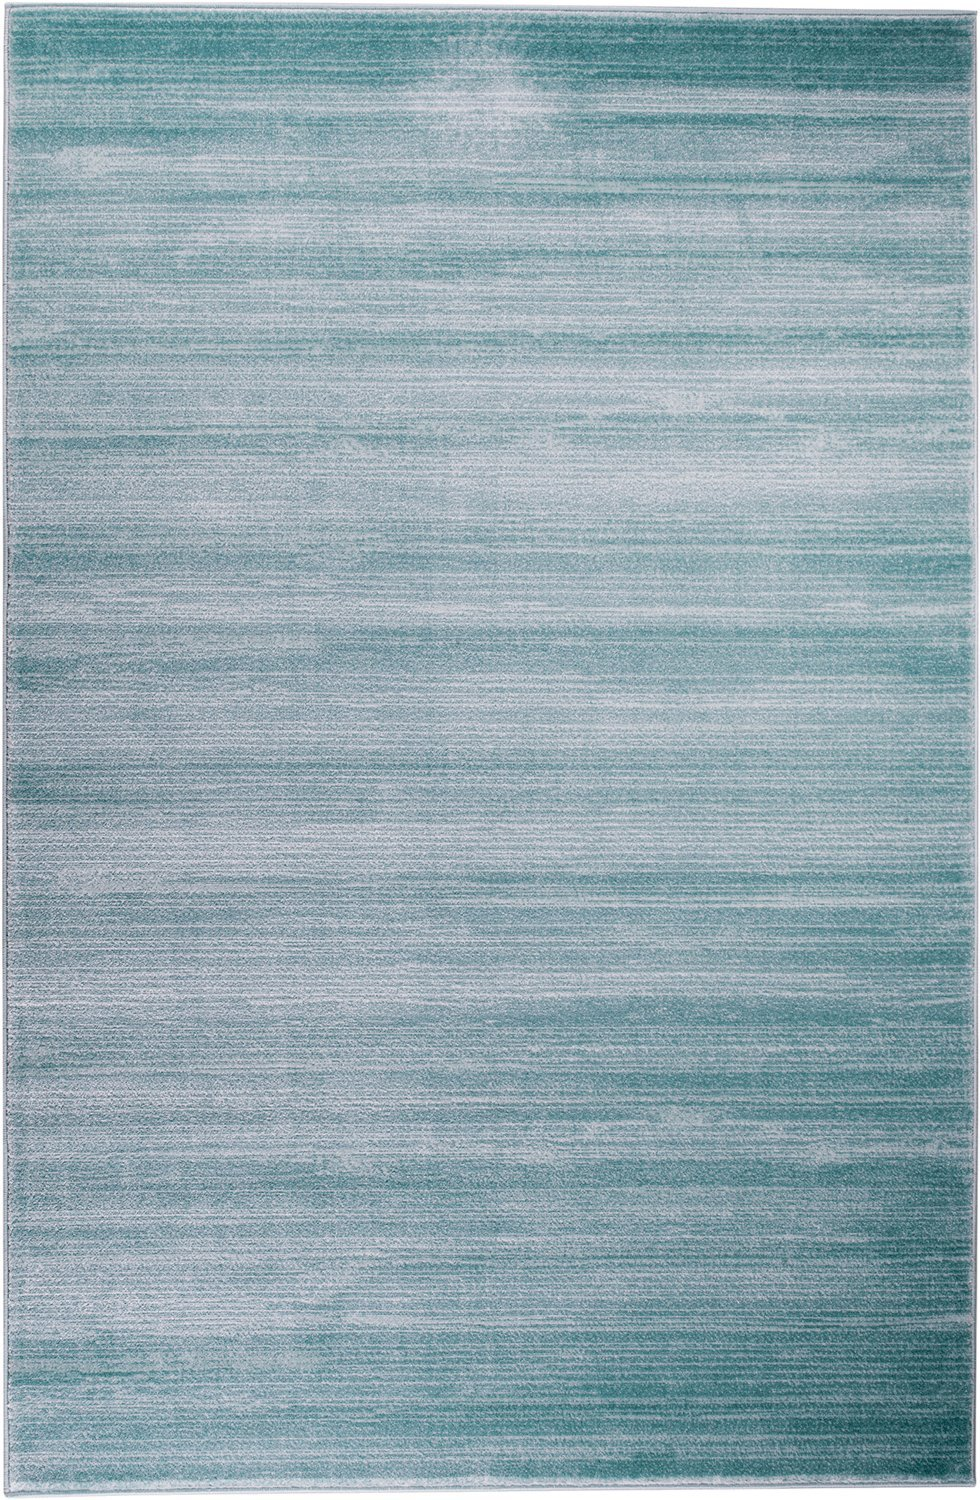 Summit RY-1MCT-YLMR 101 New Turquoise Area Rug Modern Abstract Many Sizes Available , DOOR MAT 22 inch x 35 inch